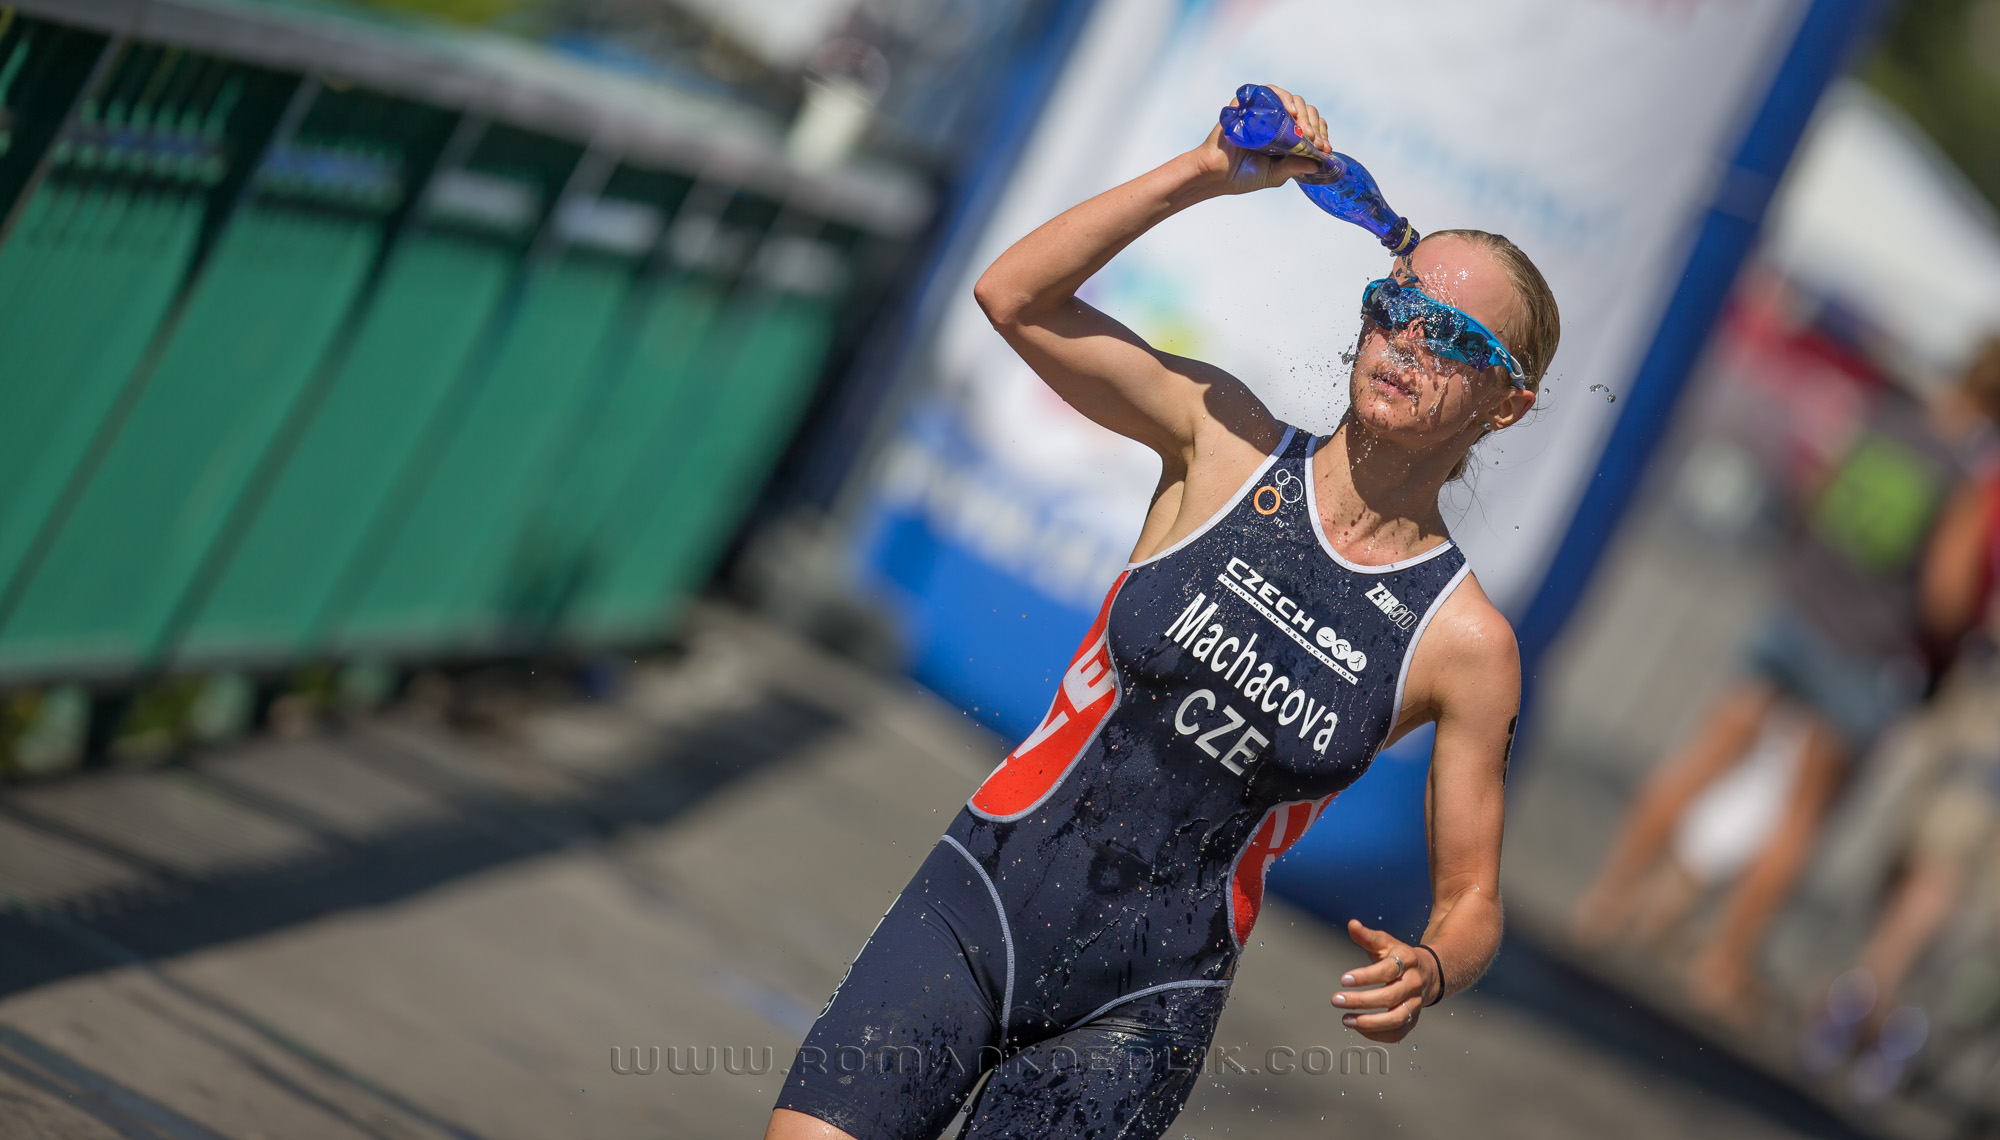 City_triatlon_2016-14